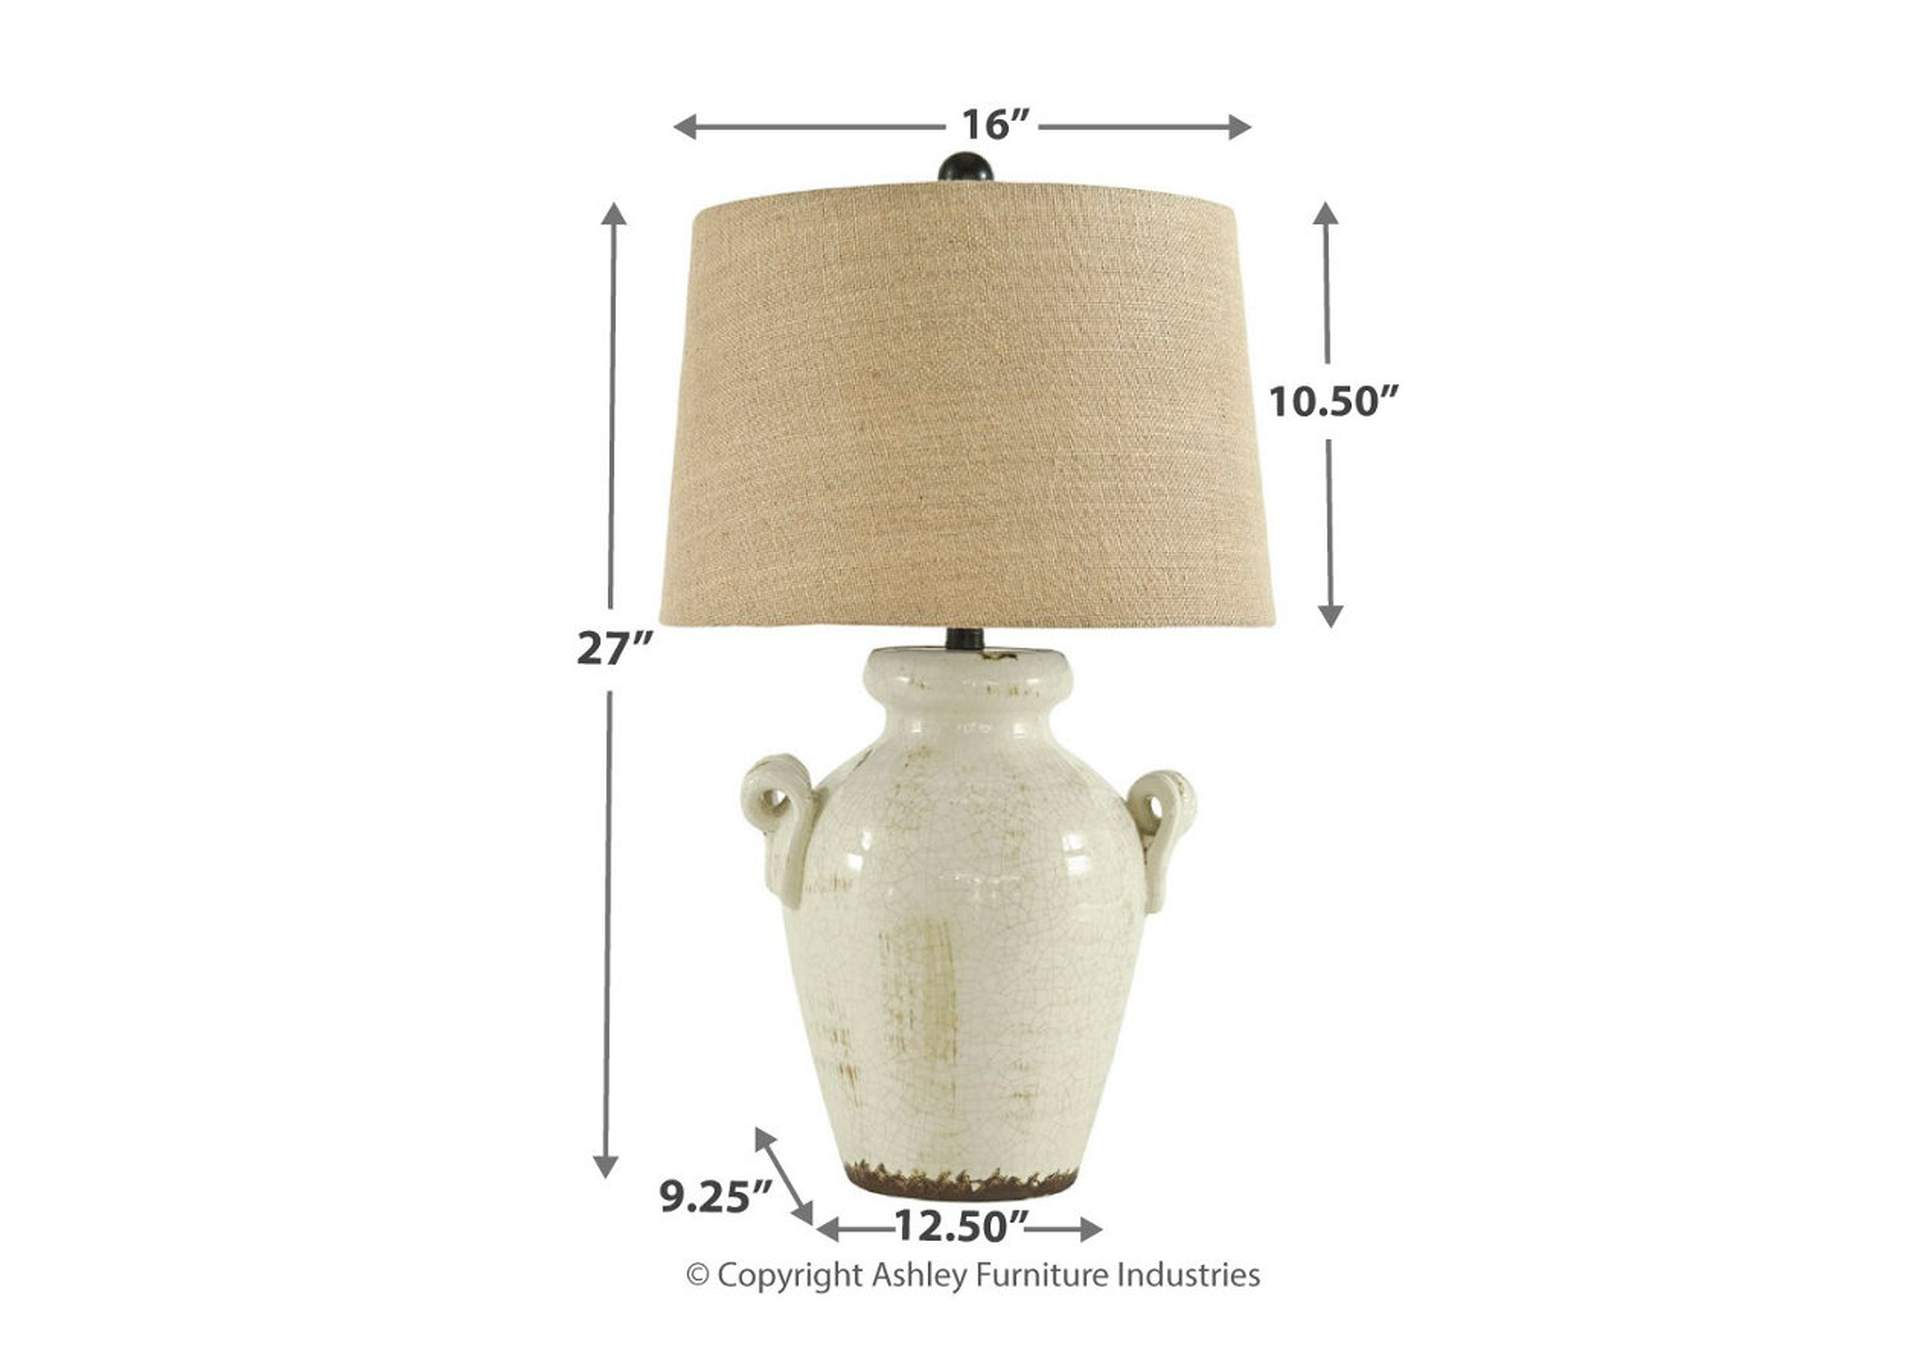 Emelda Cream Ceramic Table Lamp,Direct To Consumer Express